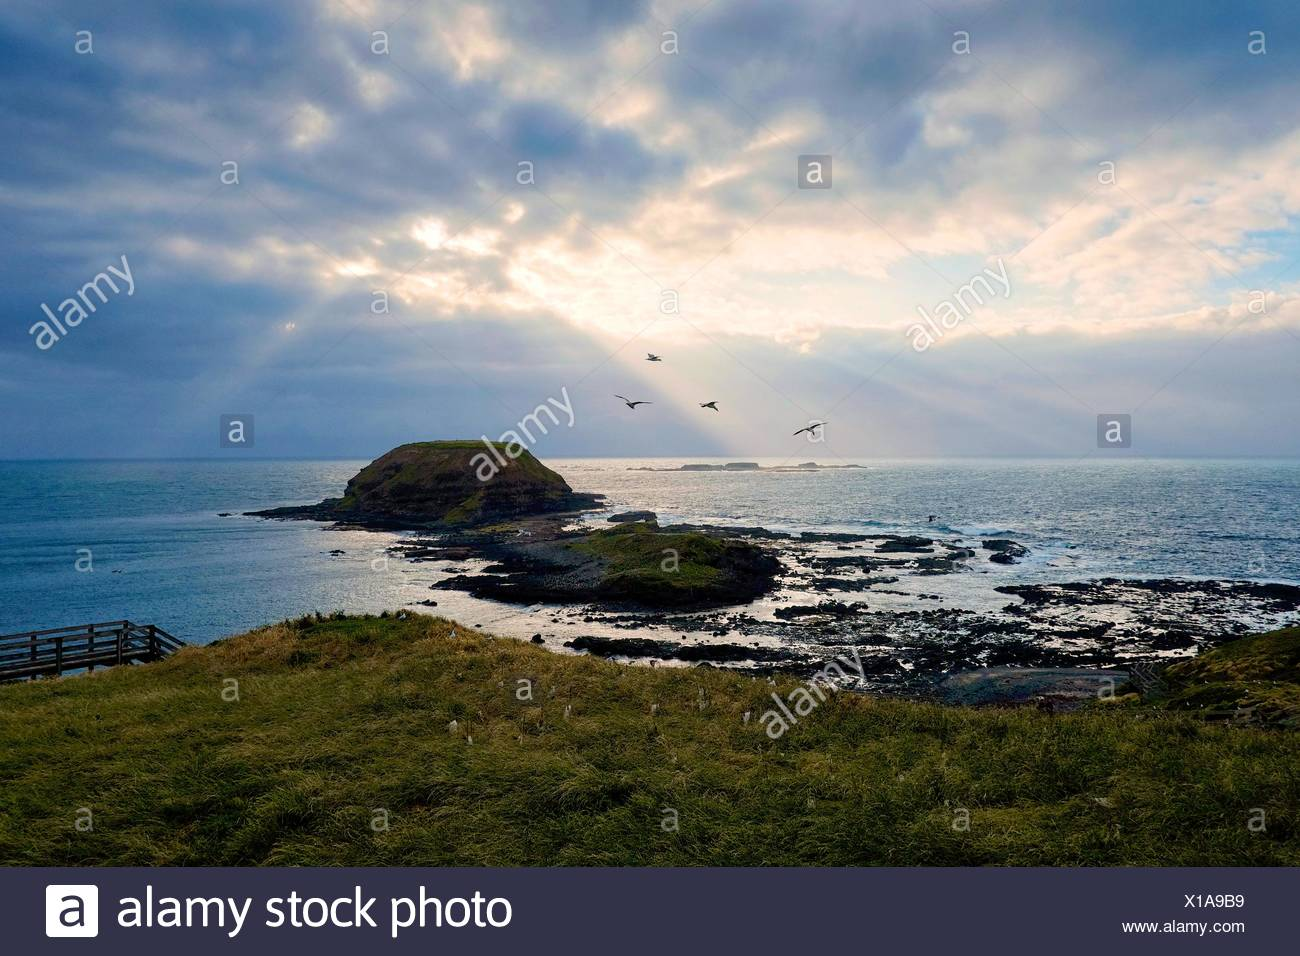 Australia, Phillip Island Nature Park, Rocky shoals seen from grassy shore - Stock Image